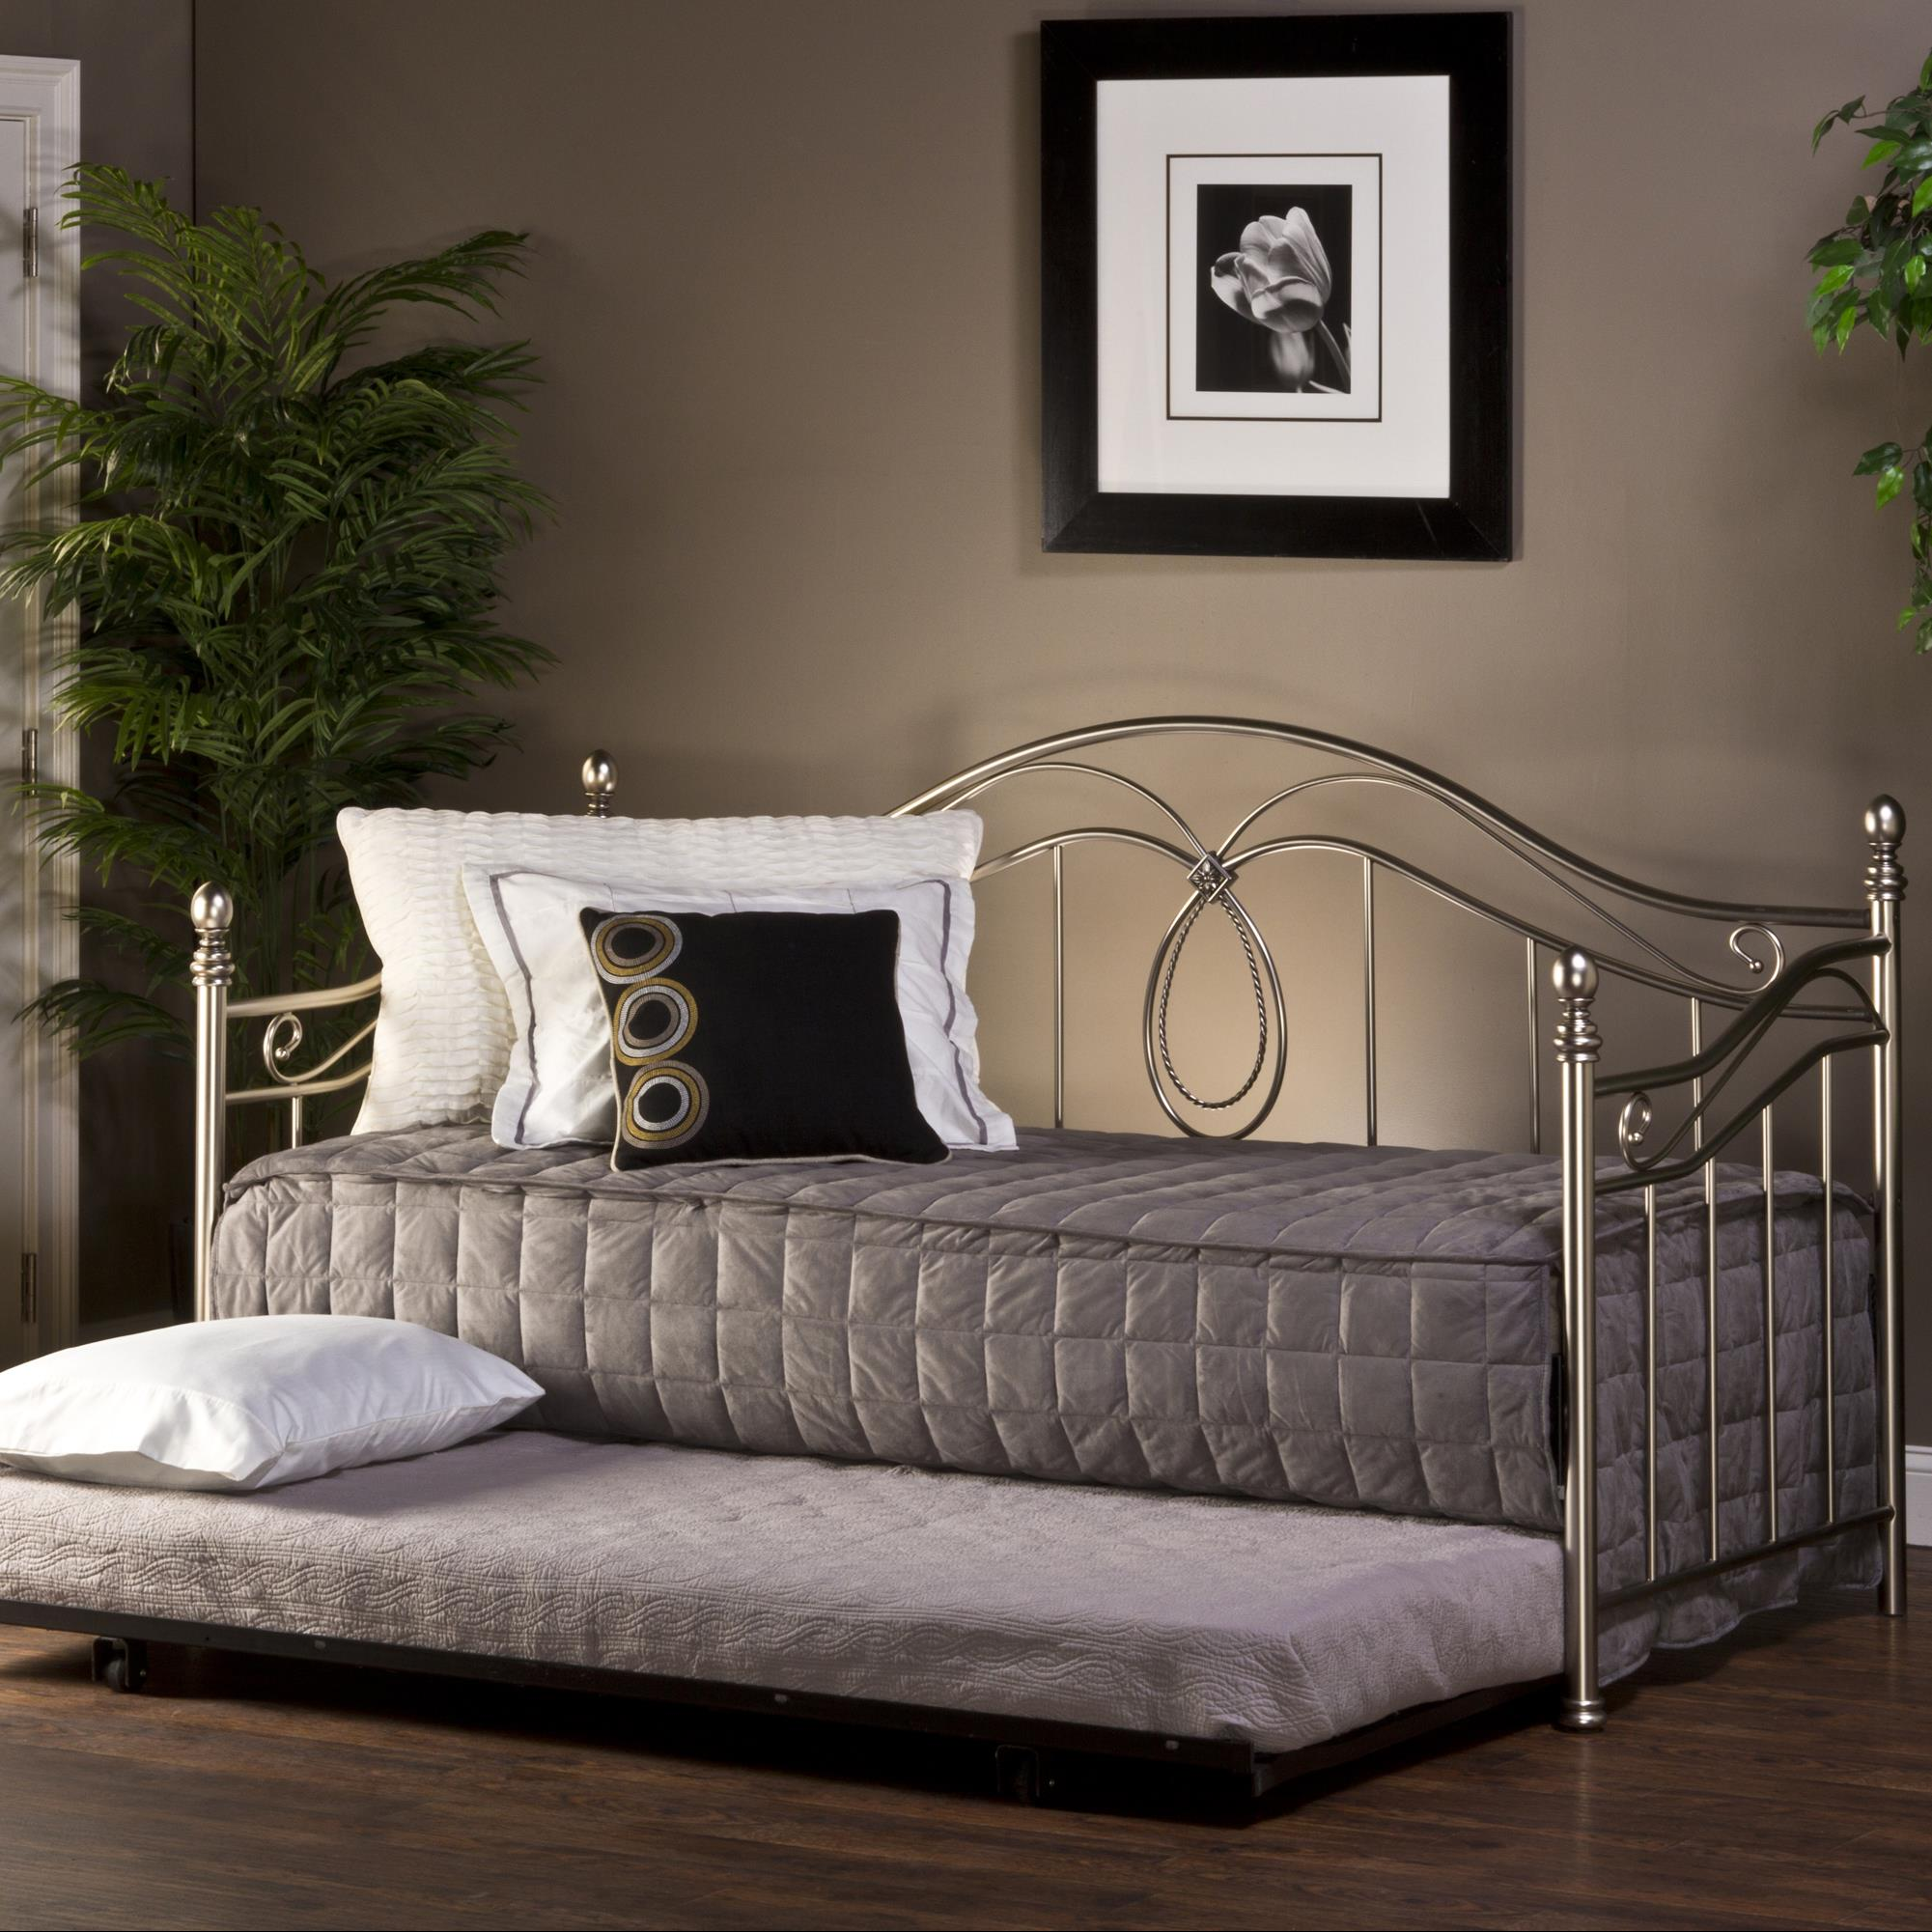 Hillsdale Daybeds Twin Milano Daybed - Item Number: 11176DBLHTR